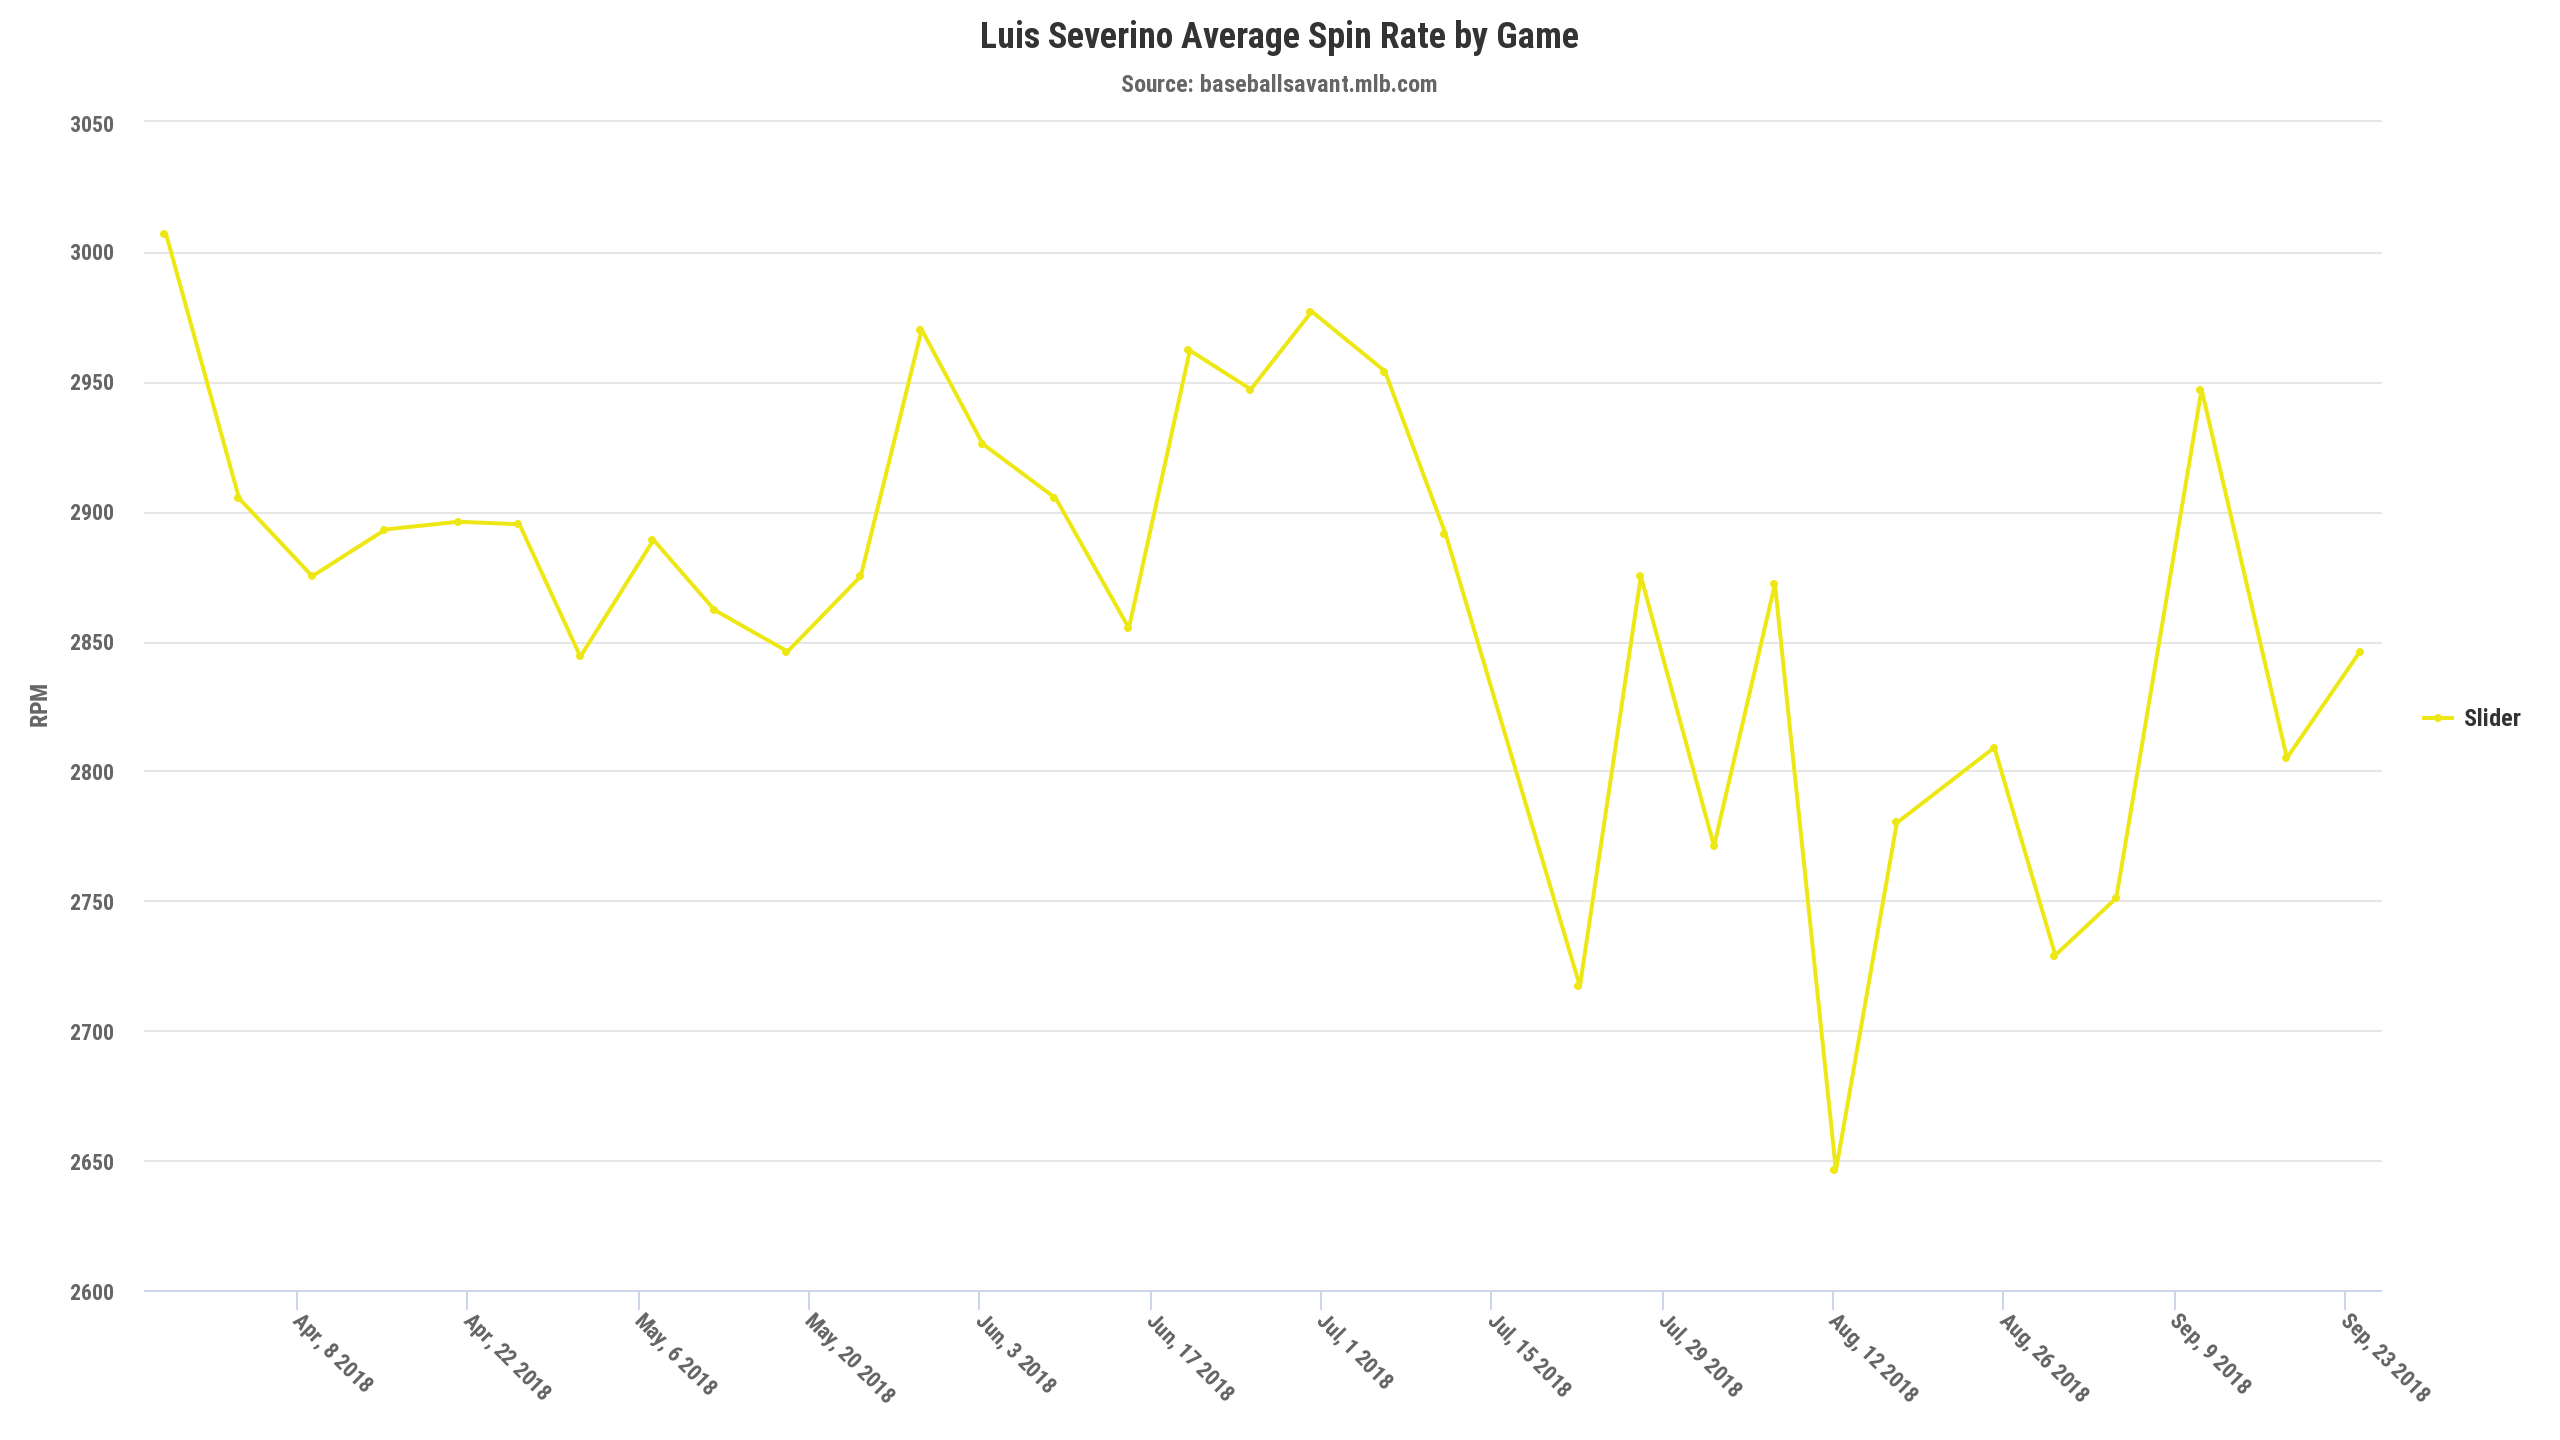 Luis-severino-slider-spin-rate-min